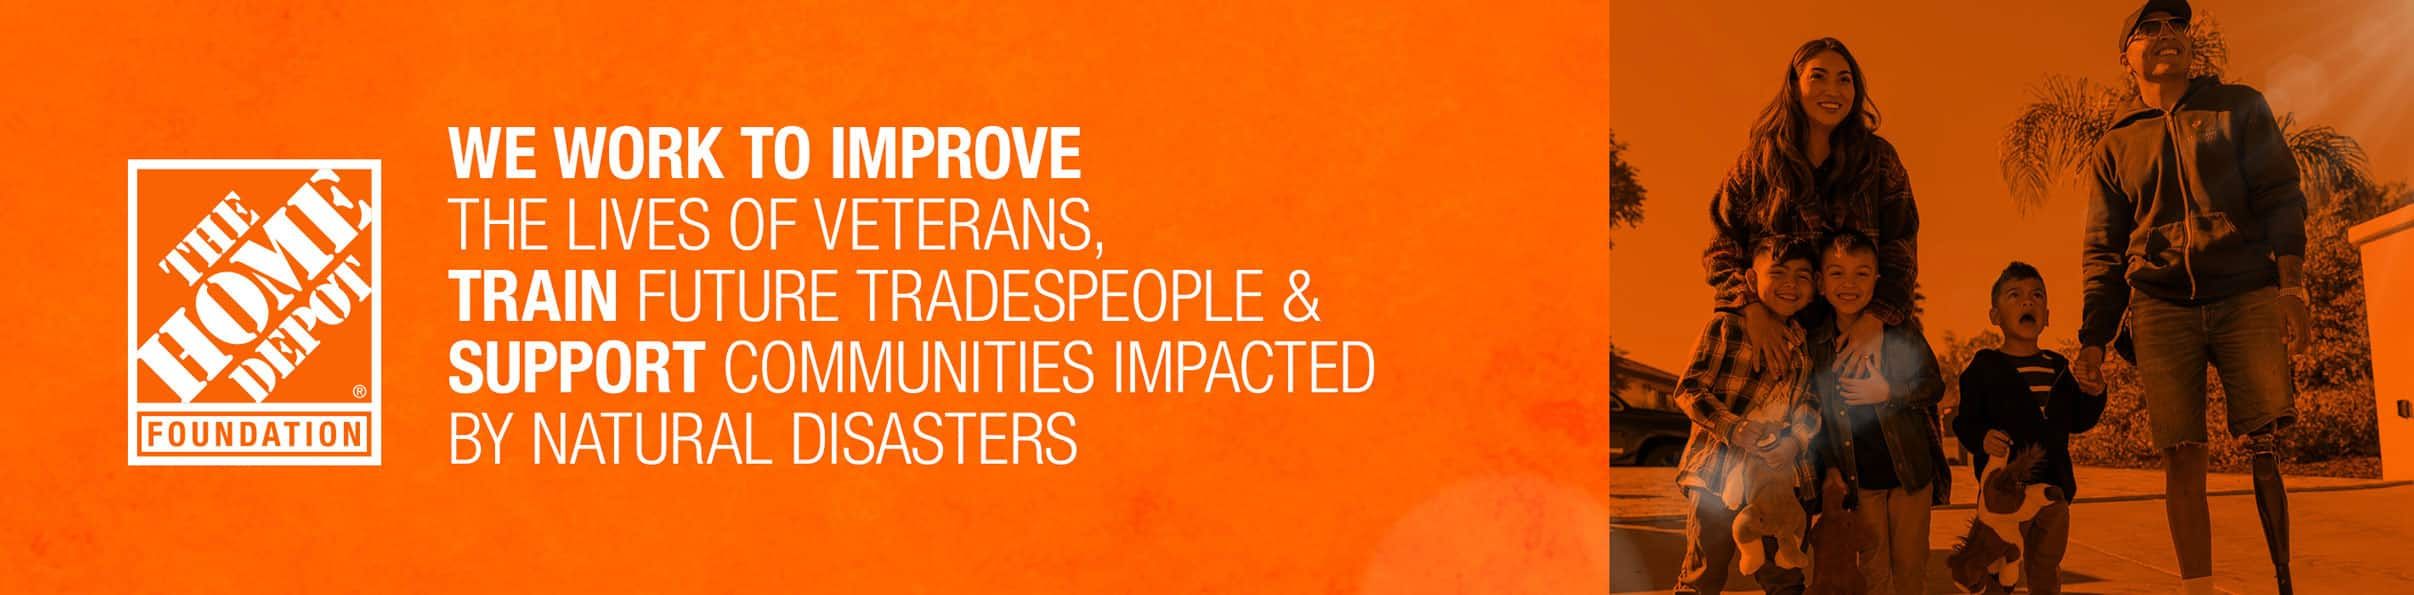 We Work to Improvethe Lives of Veterans, Train Future Tradespeople & Support Communities Impactedby Natural Disasters